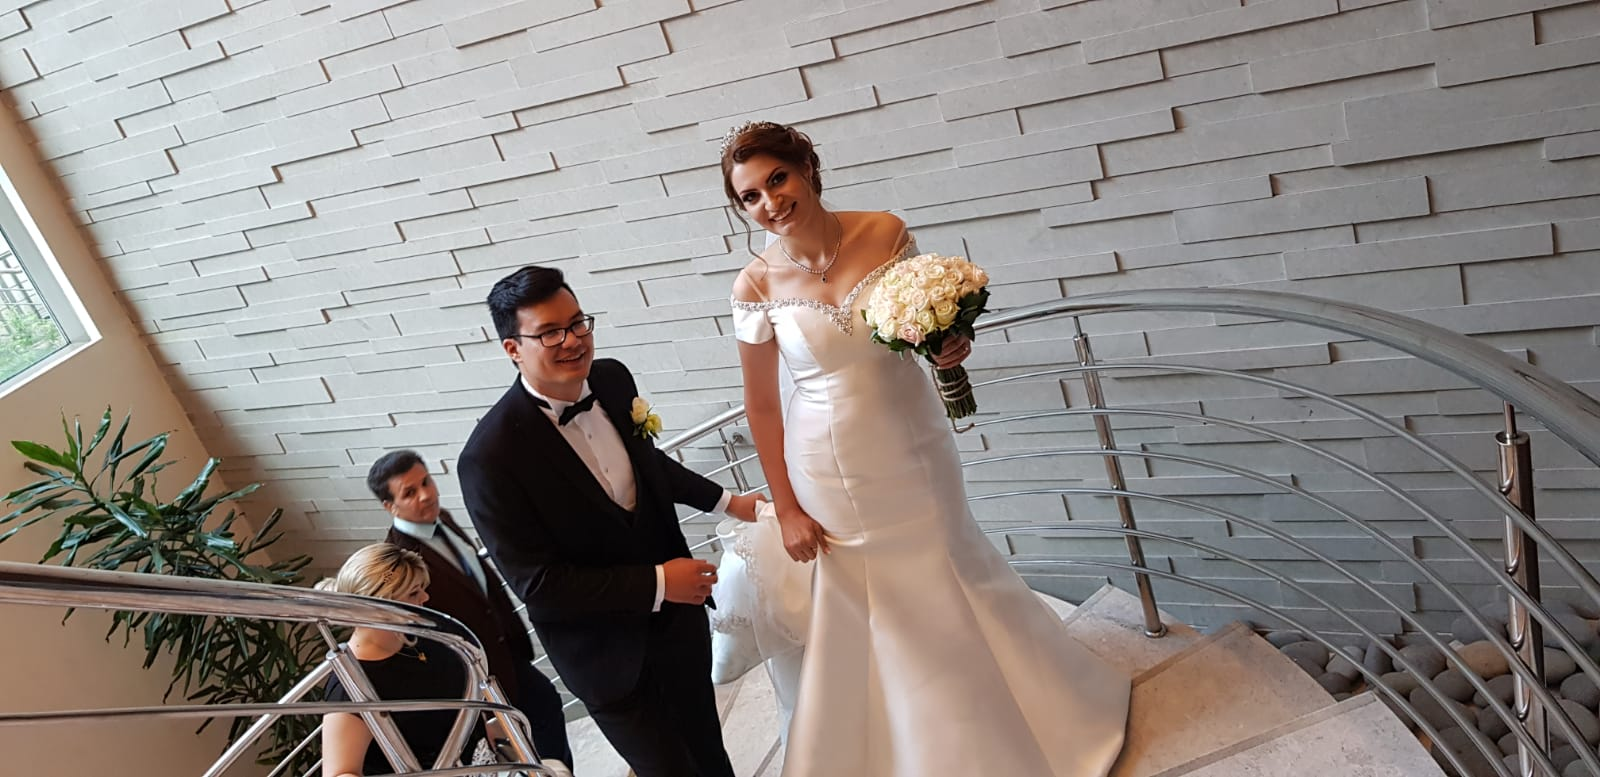 Persian Weddings costs in Turkey for 2020